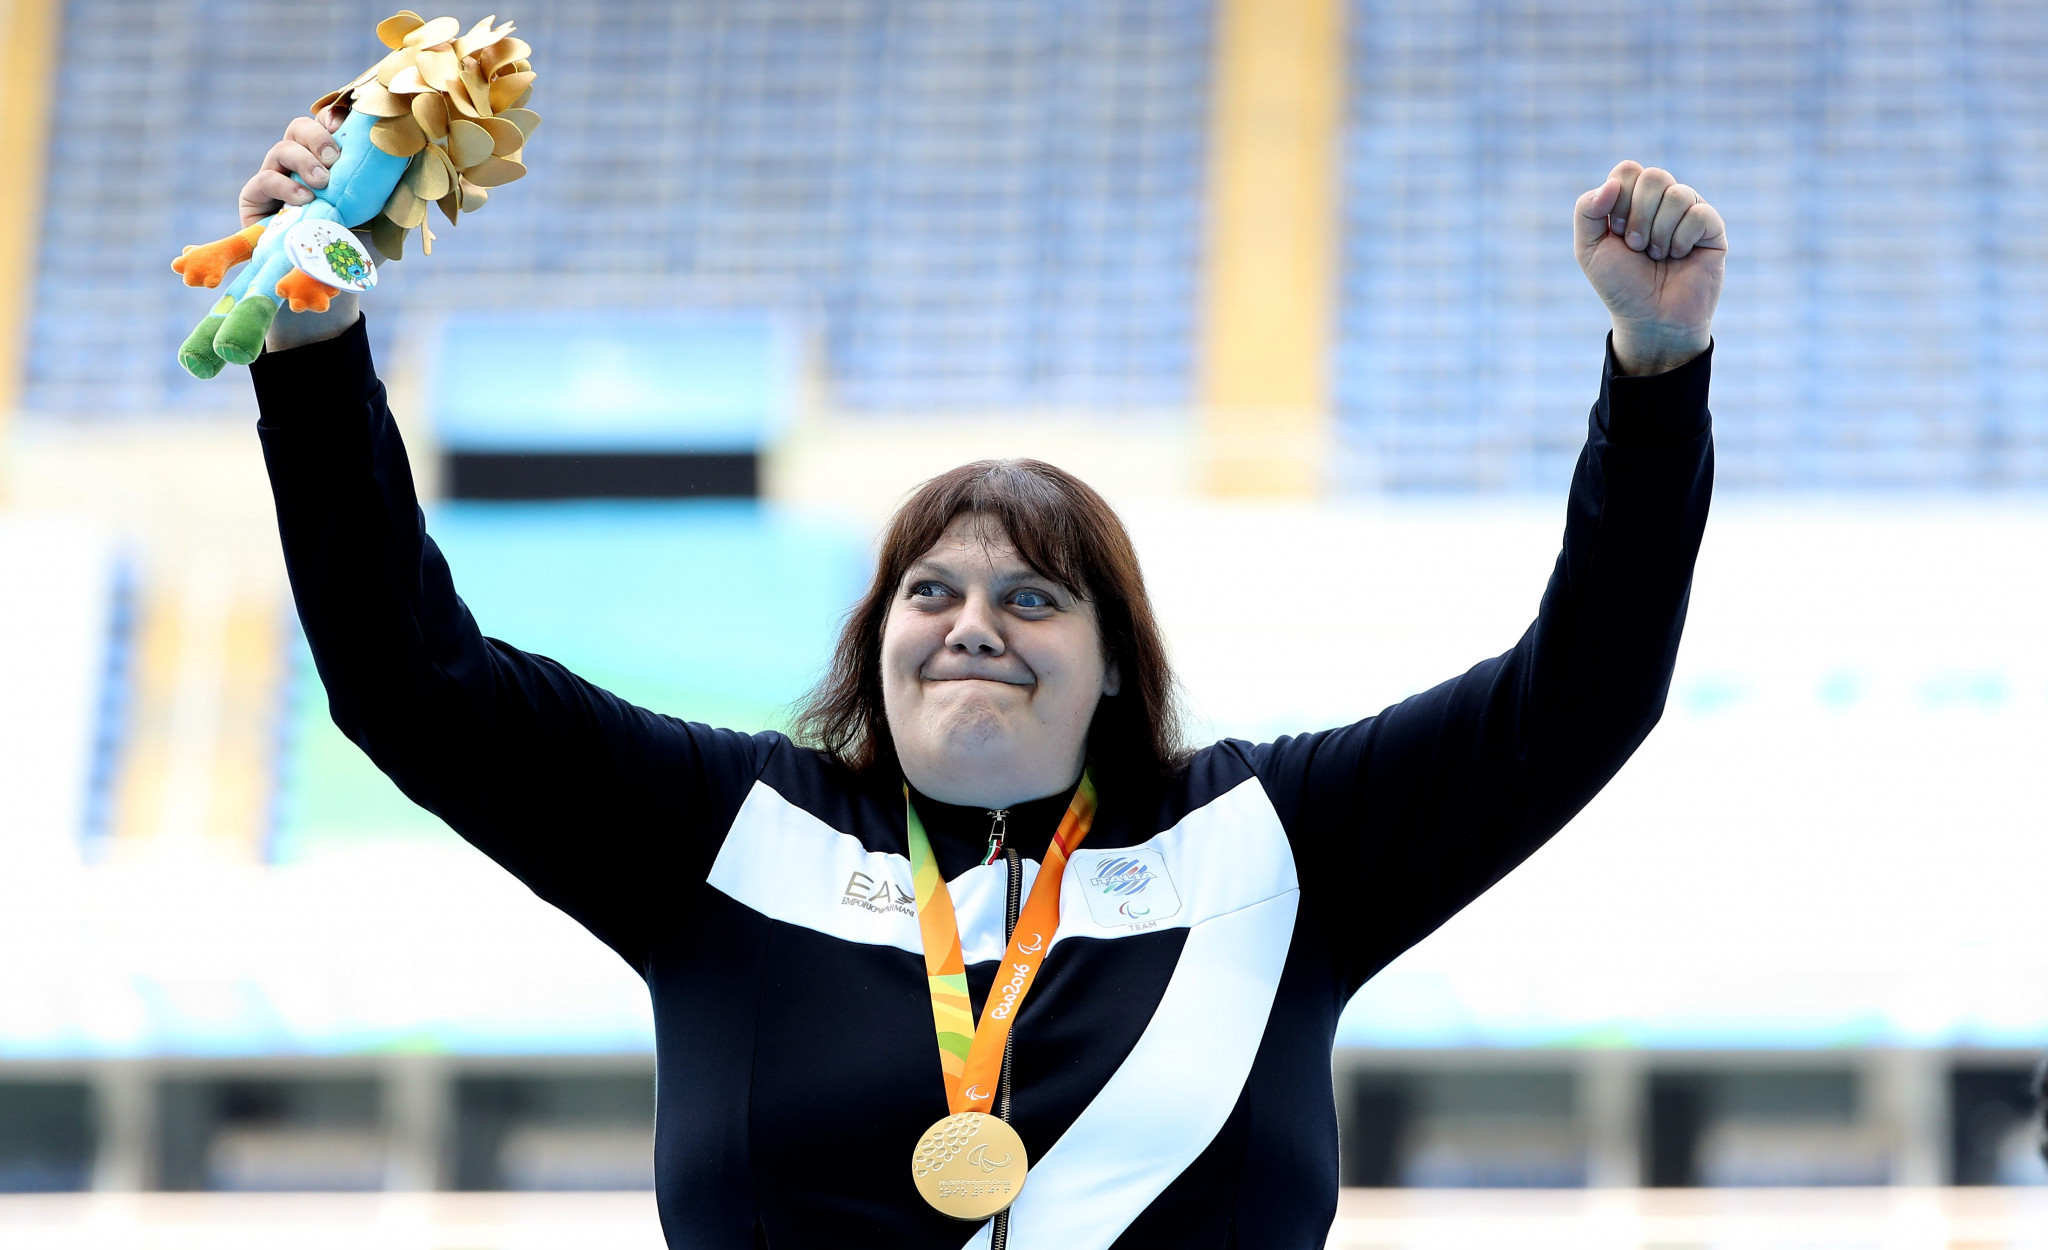 Italy's Paralympic champion Assunta Legnante won the women's shot put F11-37-38-41 at the 2018 Ancona Winter Challenge ©Getty Images